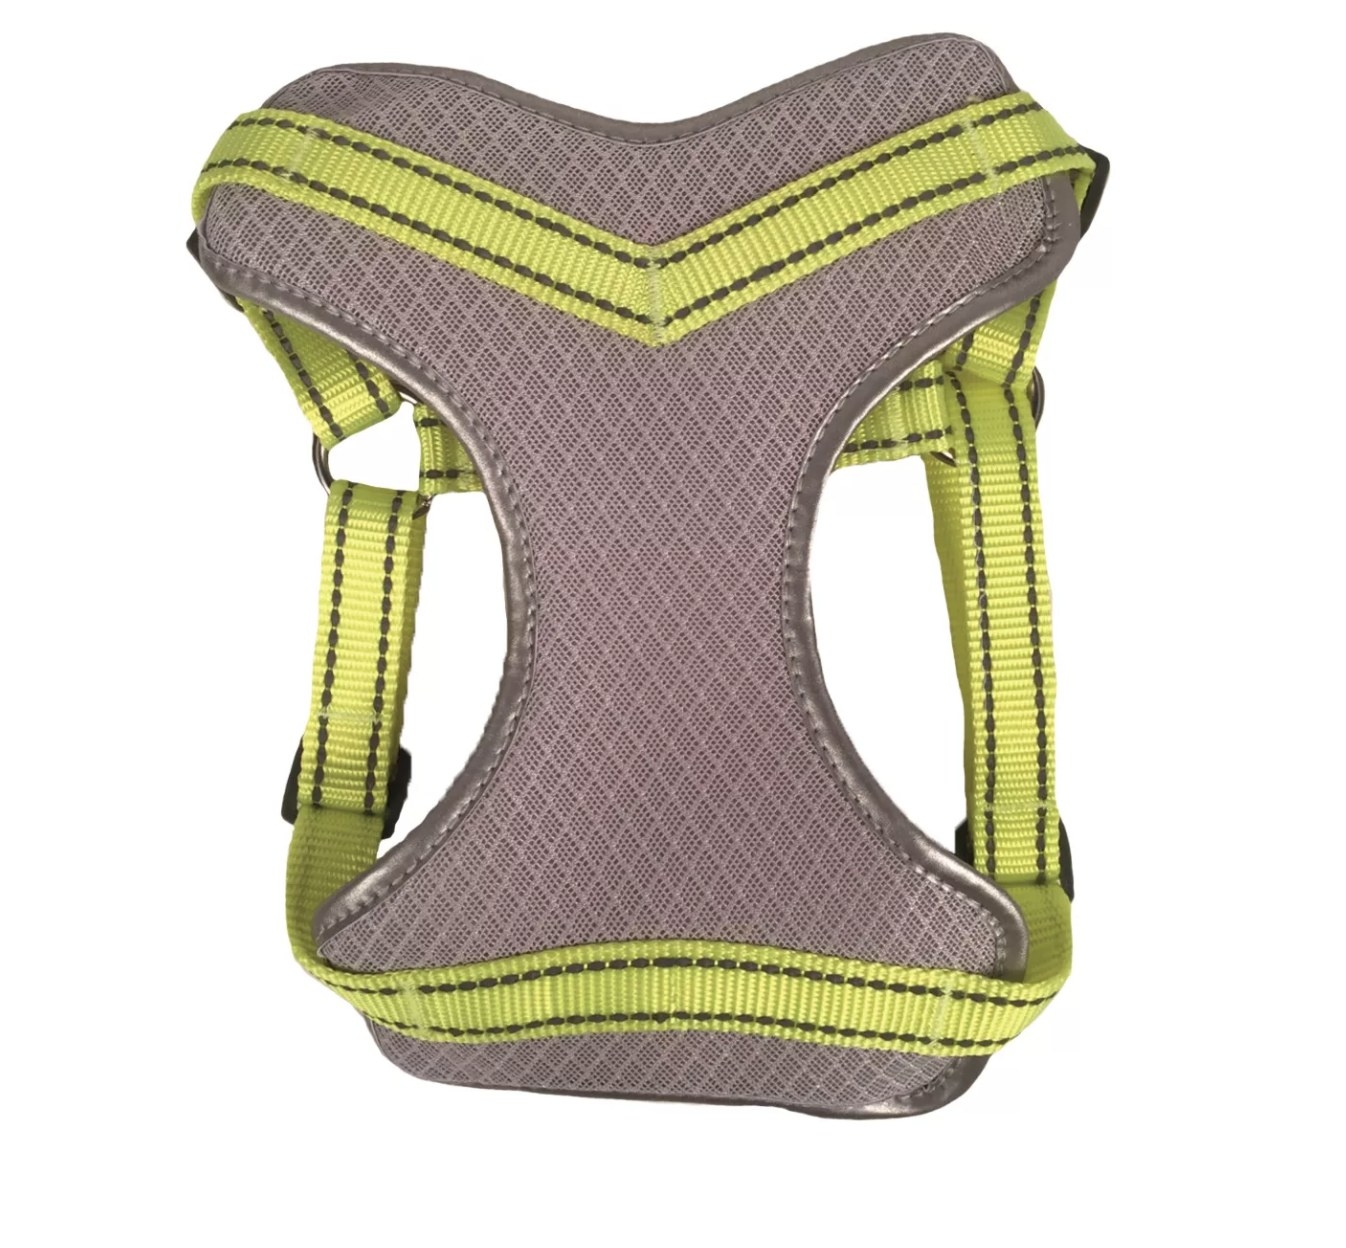 The gray mesh dog harness with neon yellow straps